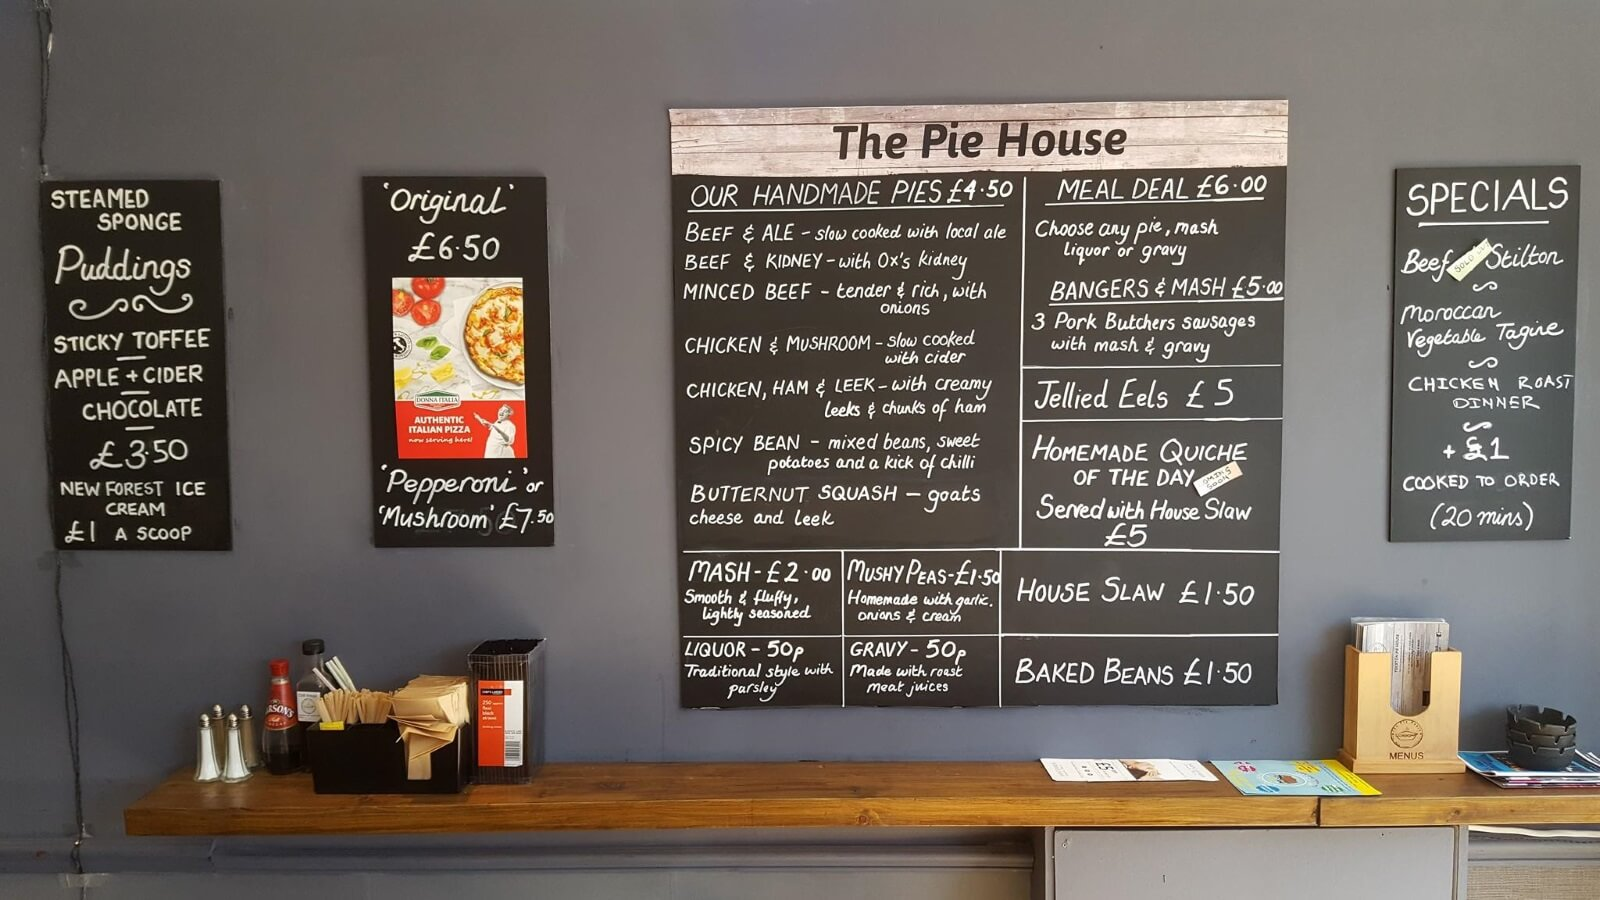 The Pie House